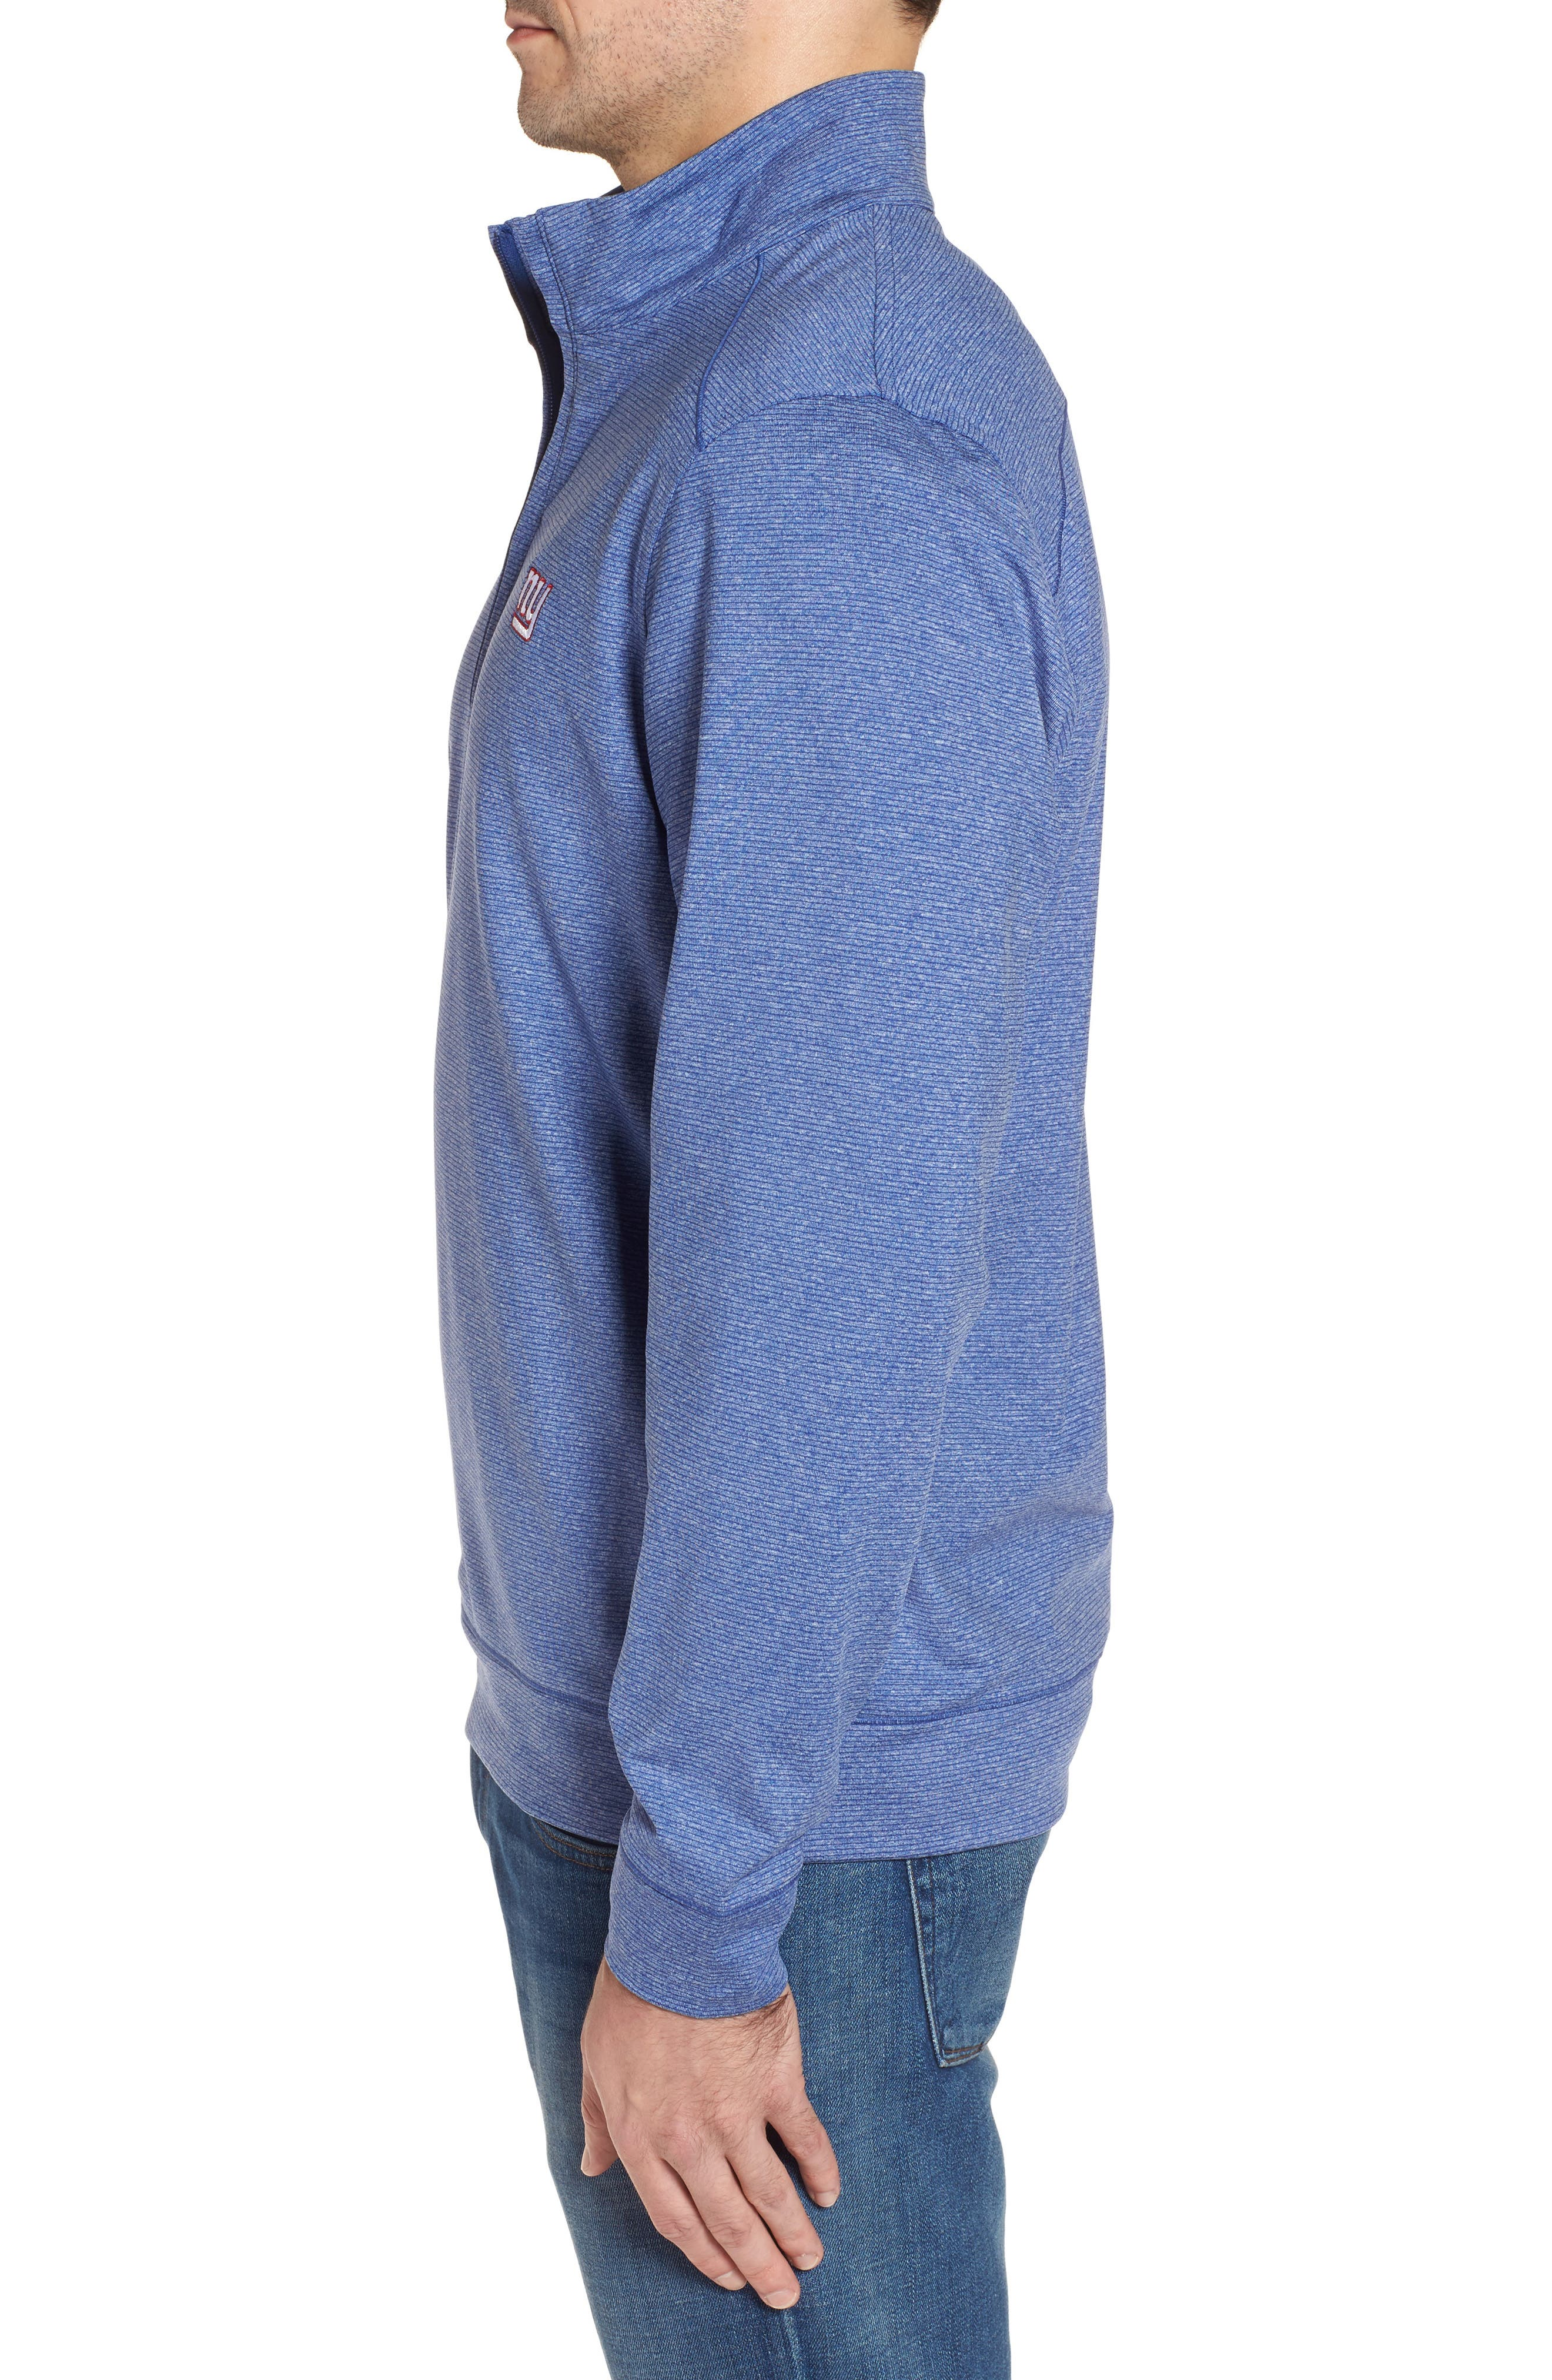 Shoreline - New York Giants Half Zip Pullover,                             Alternate thumbnail 3, color,                             Tour Blue Heather